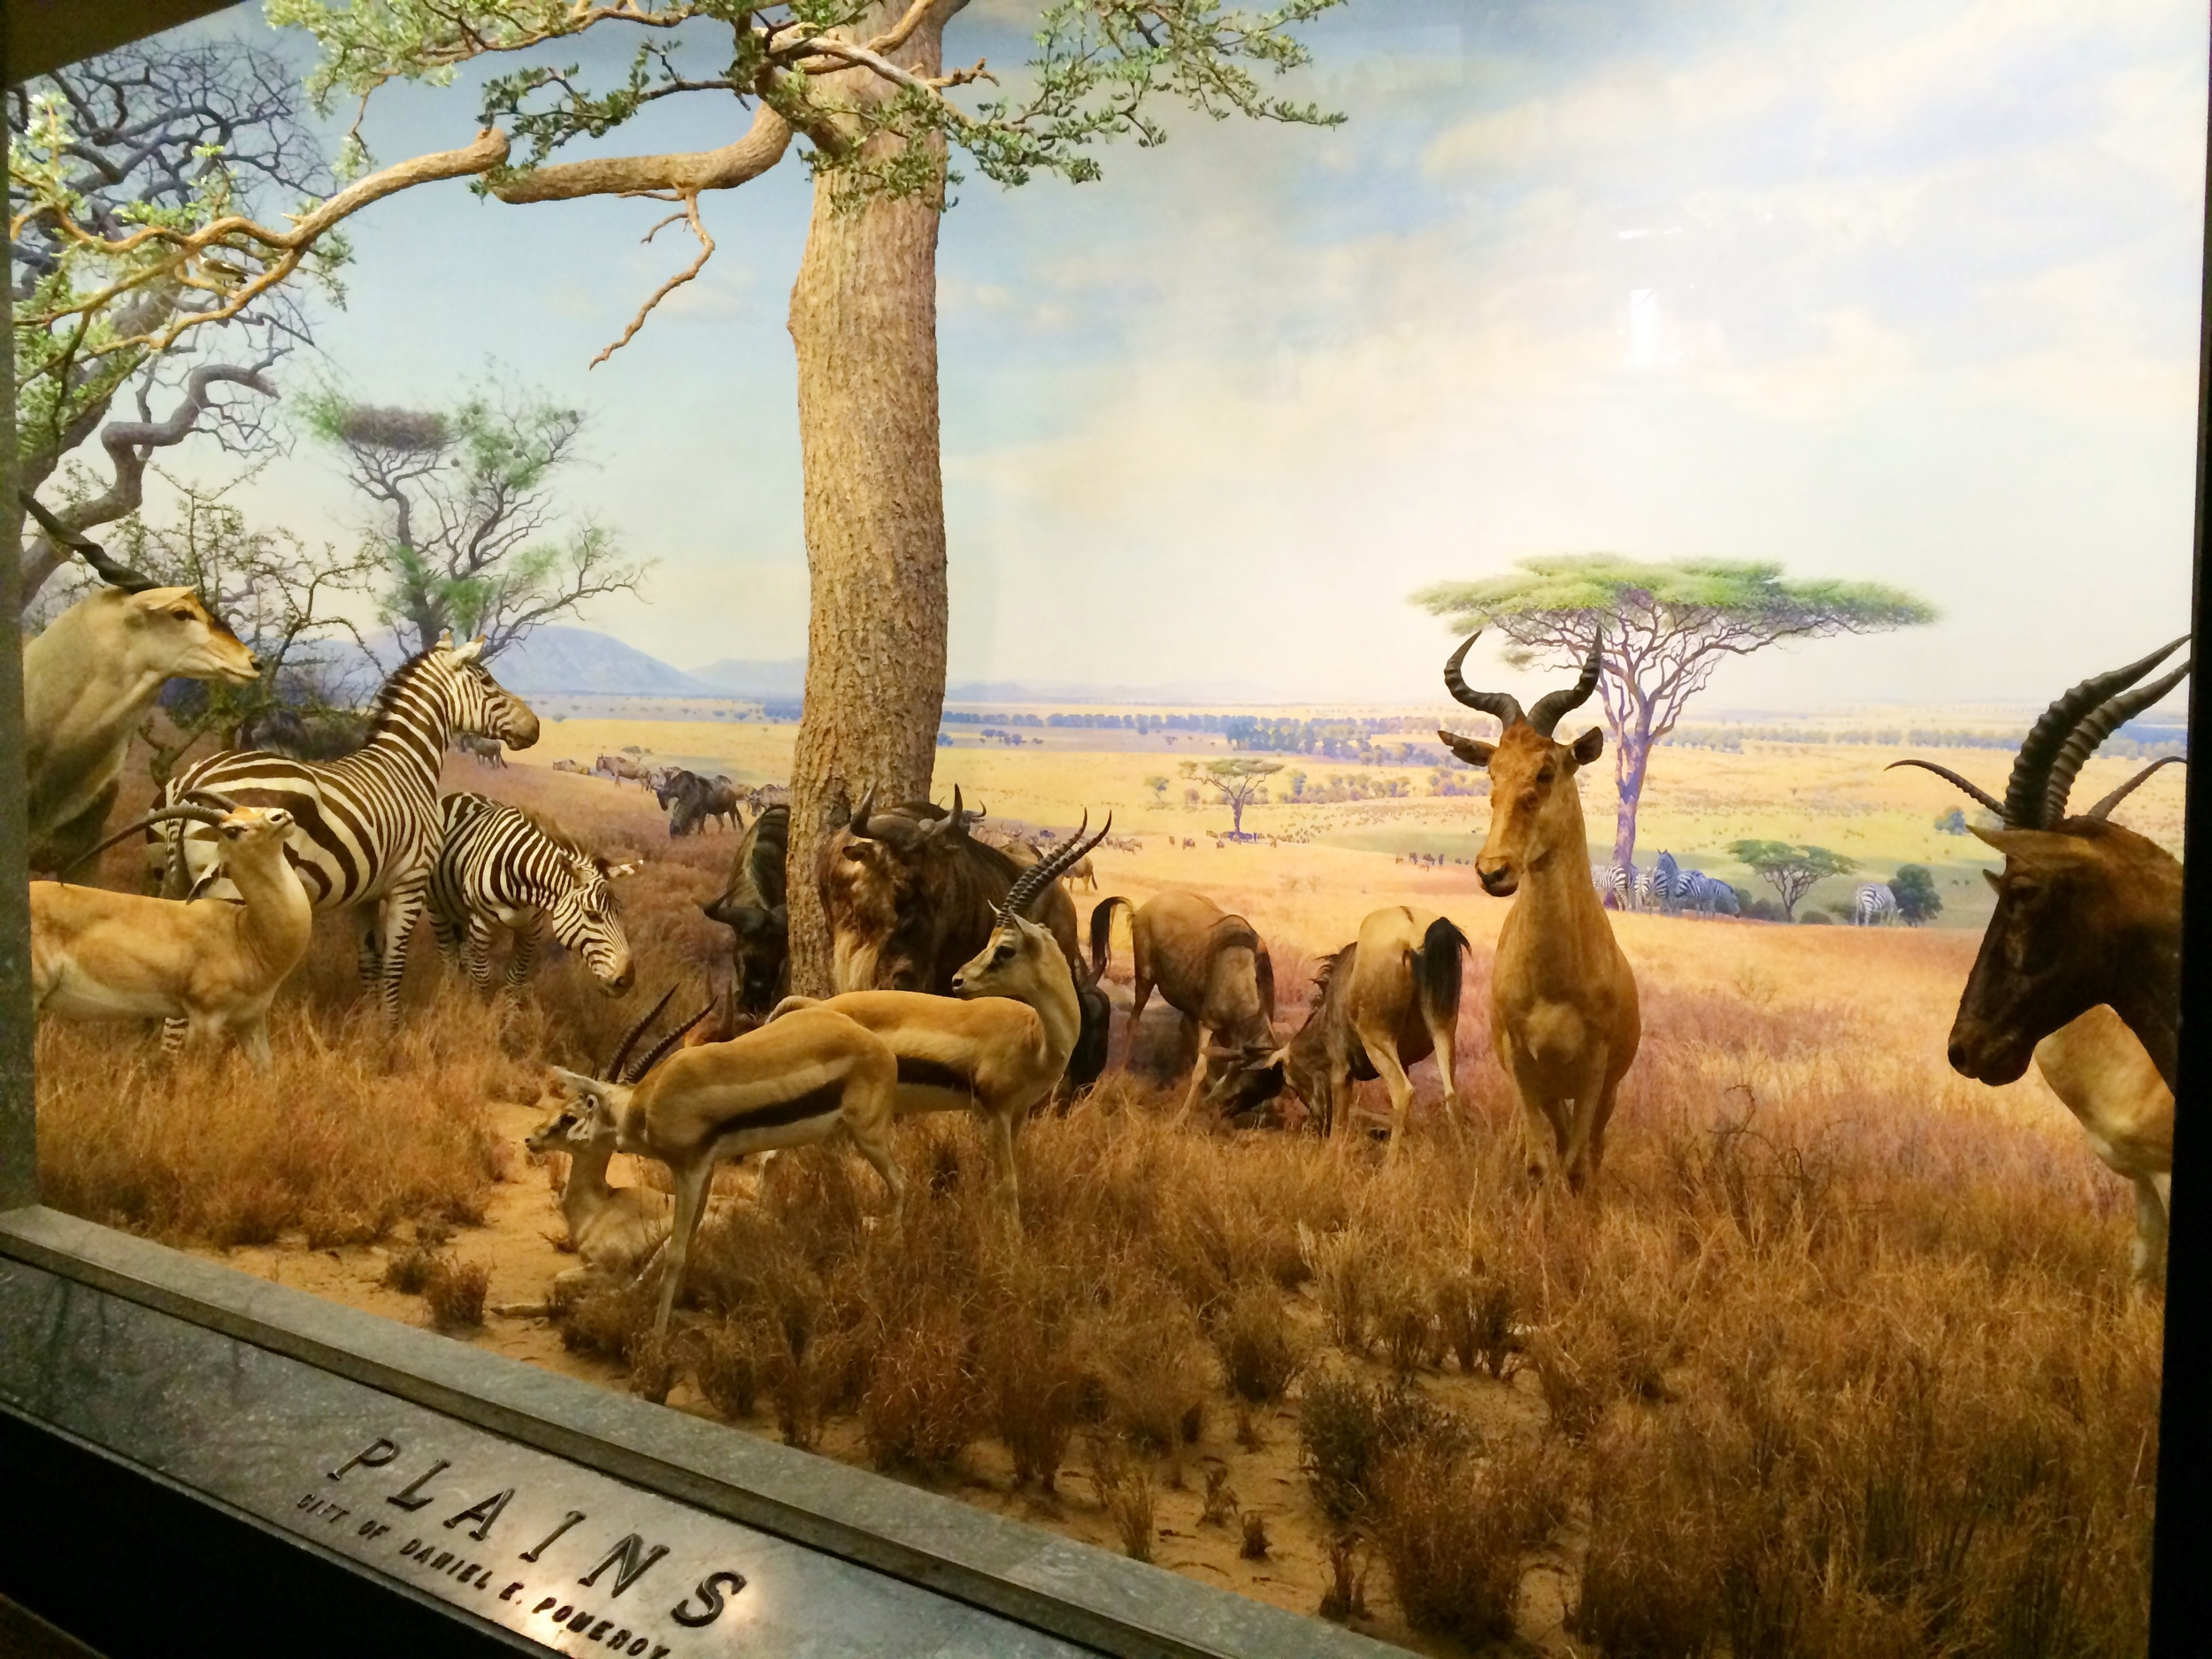 Plains of Africa. Diorama in the AMNH, New York